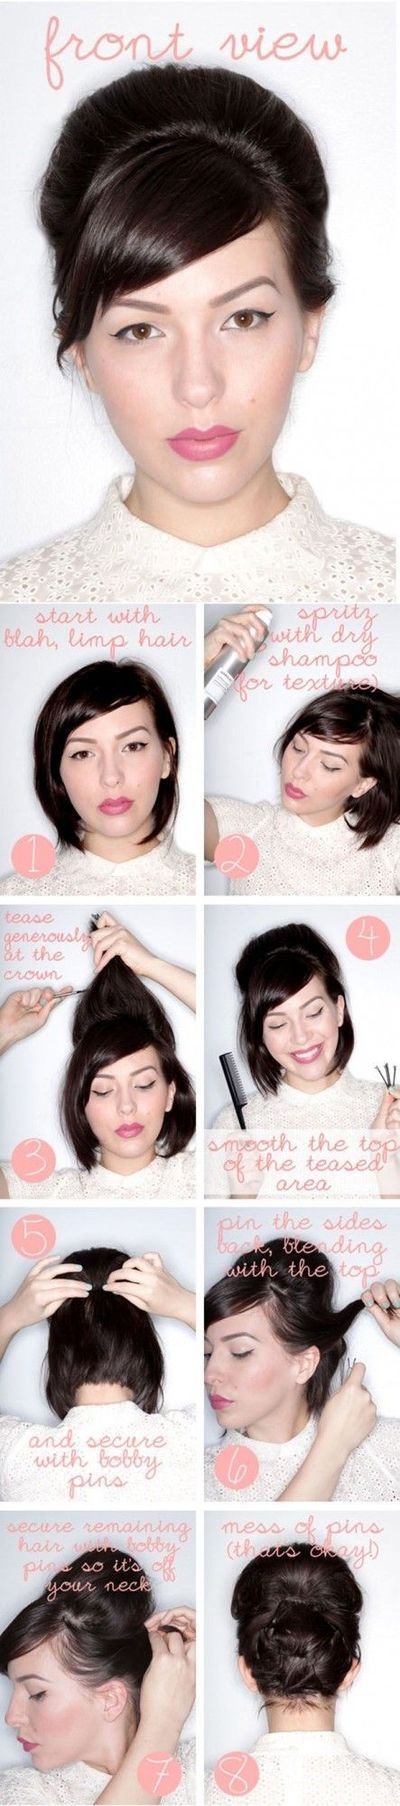 How to create Amy Winehouse's signature look with short hair.